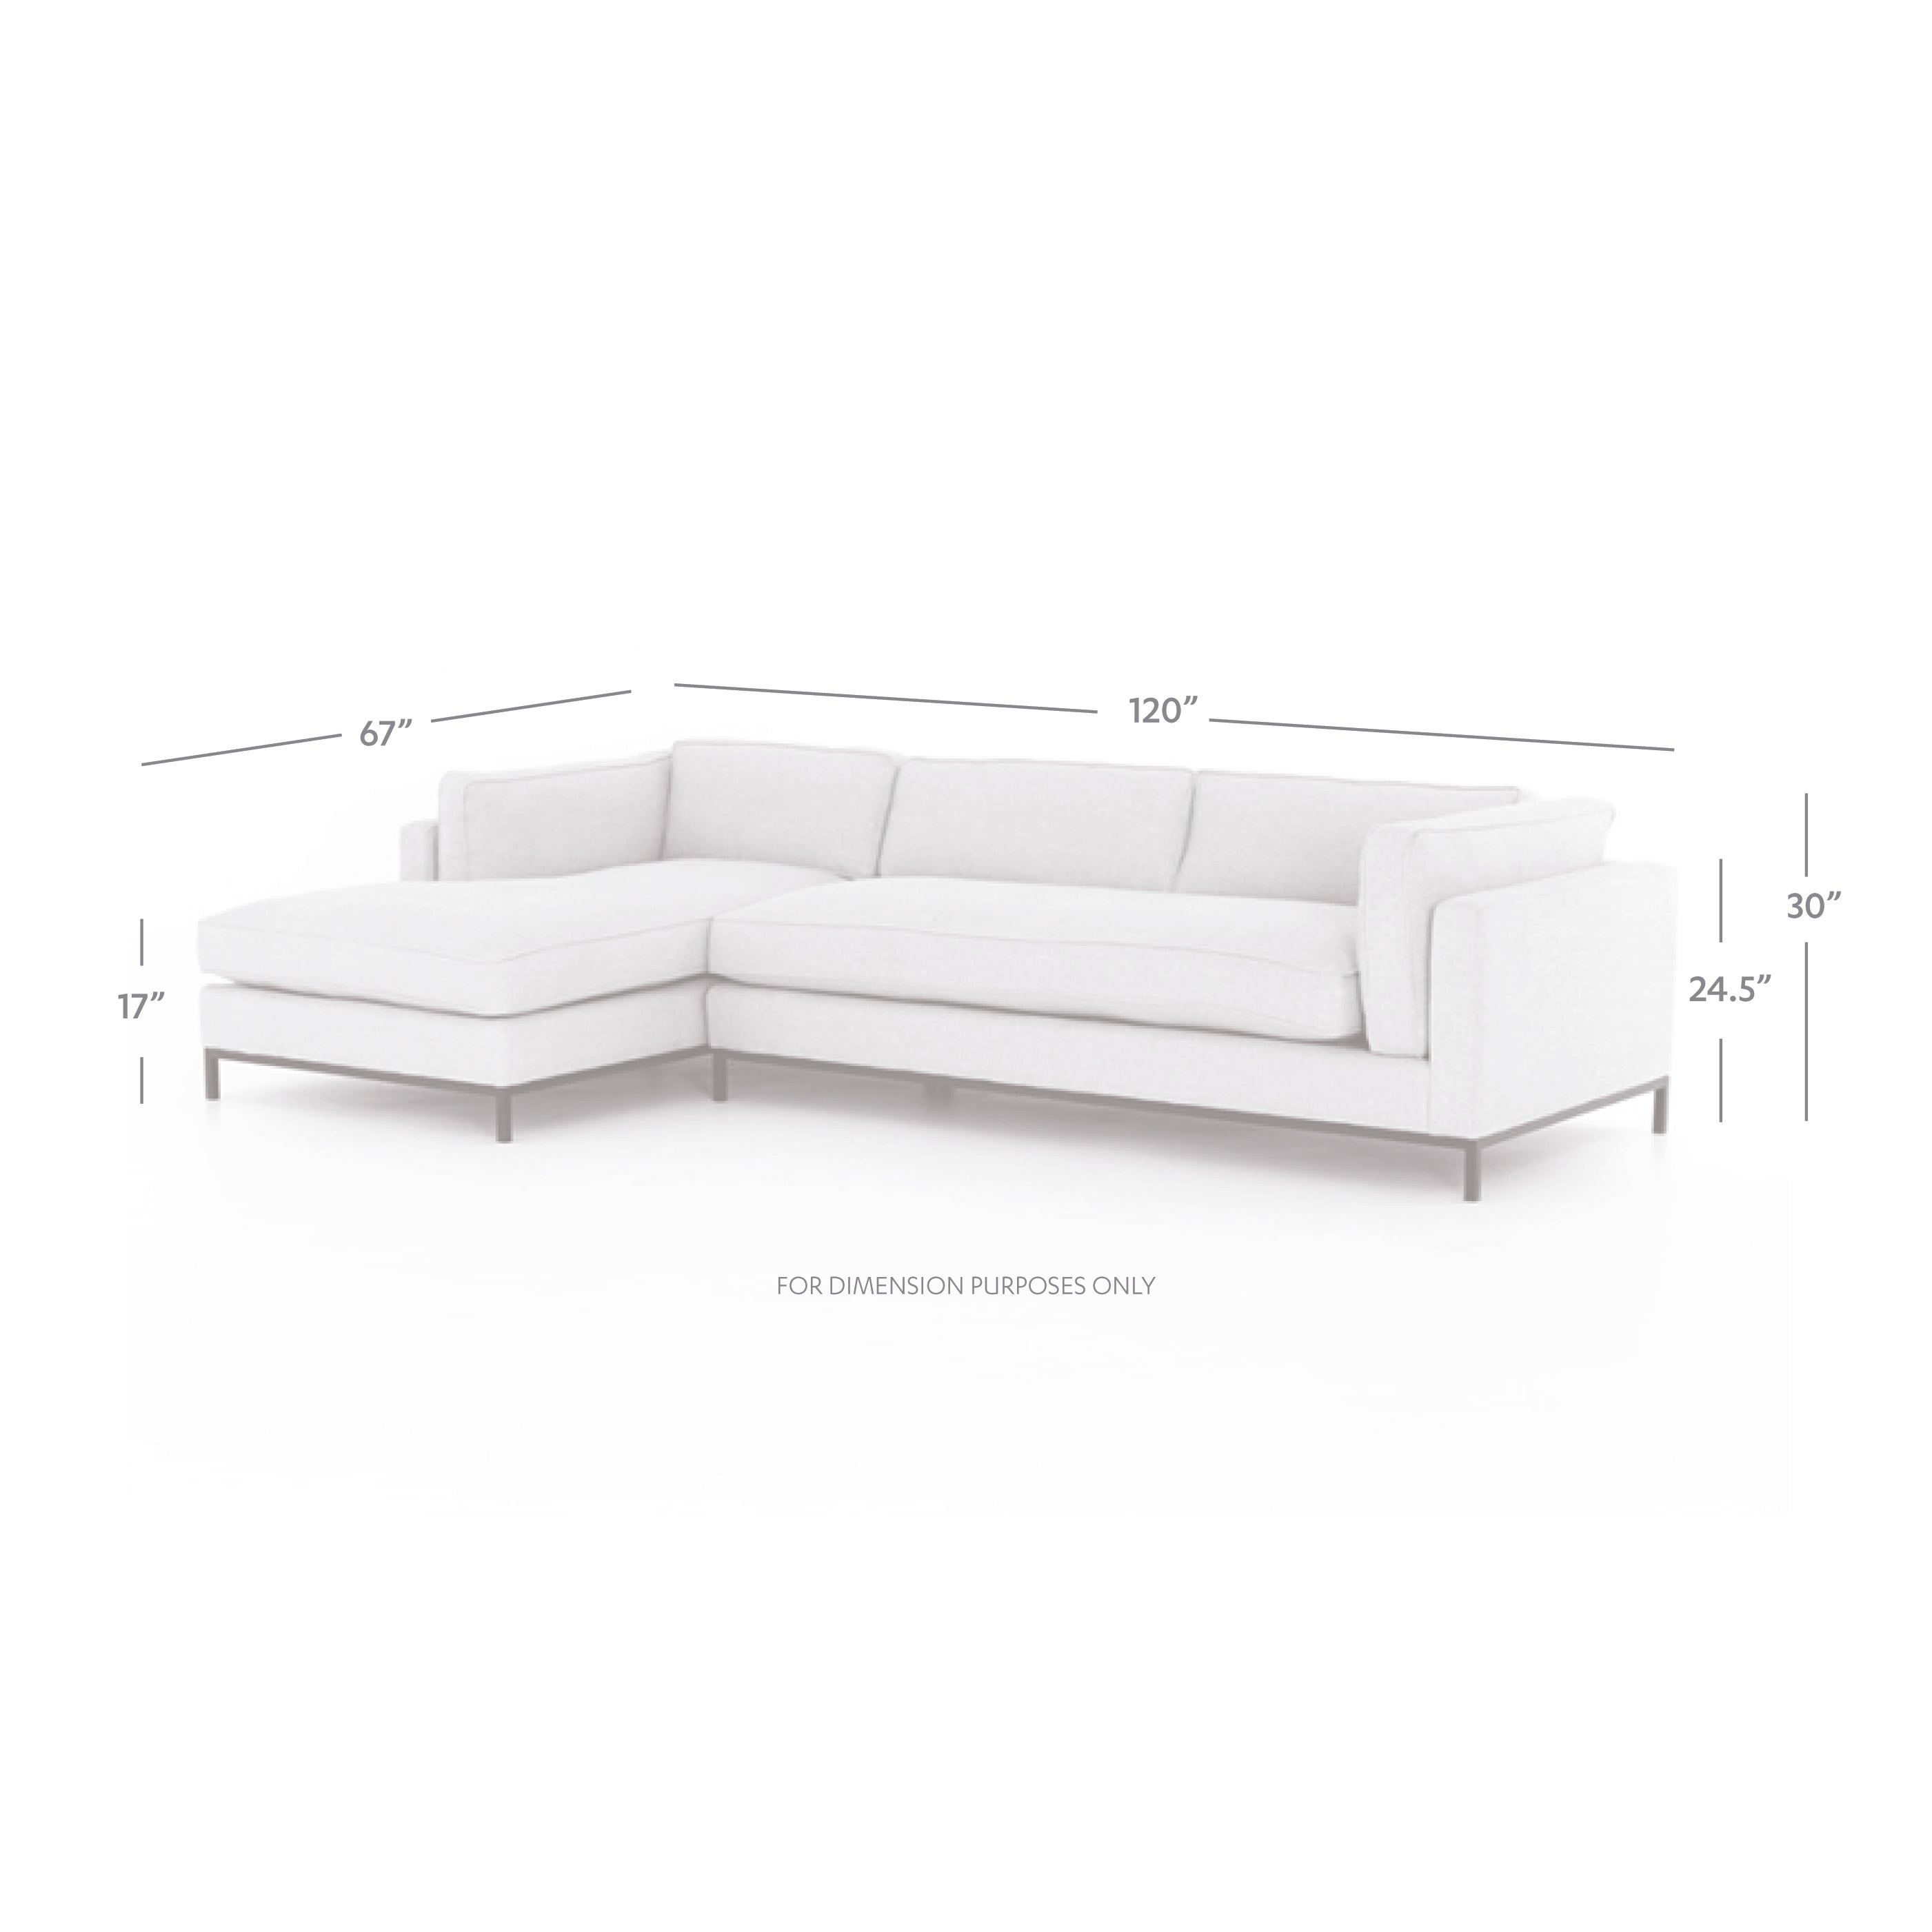 Grammercy 2 Pc Sectional-Laf Chaise-Benn